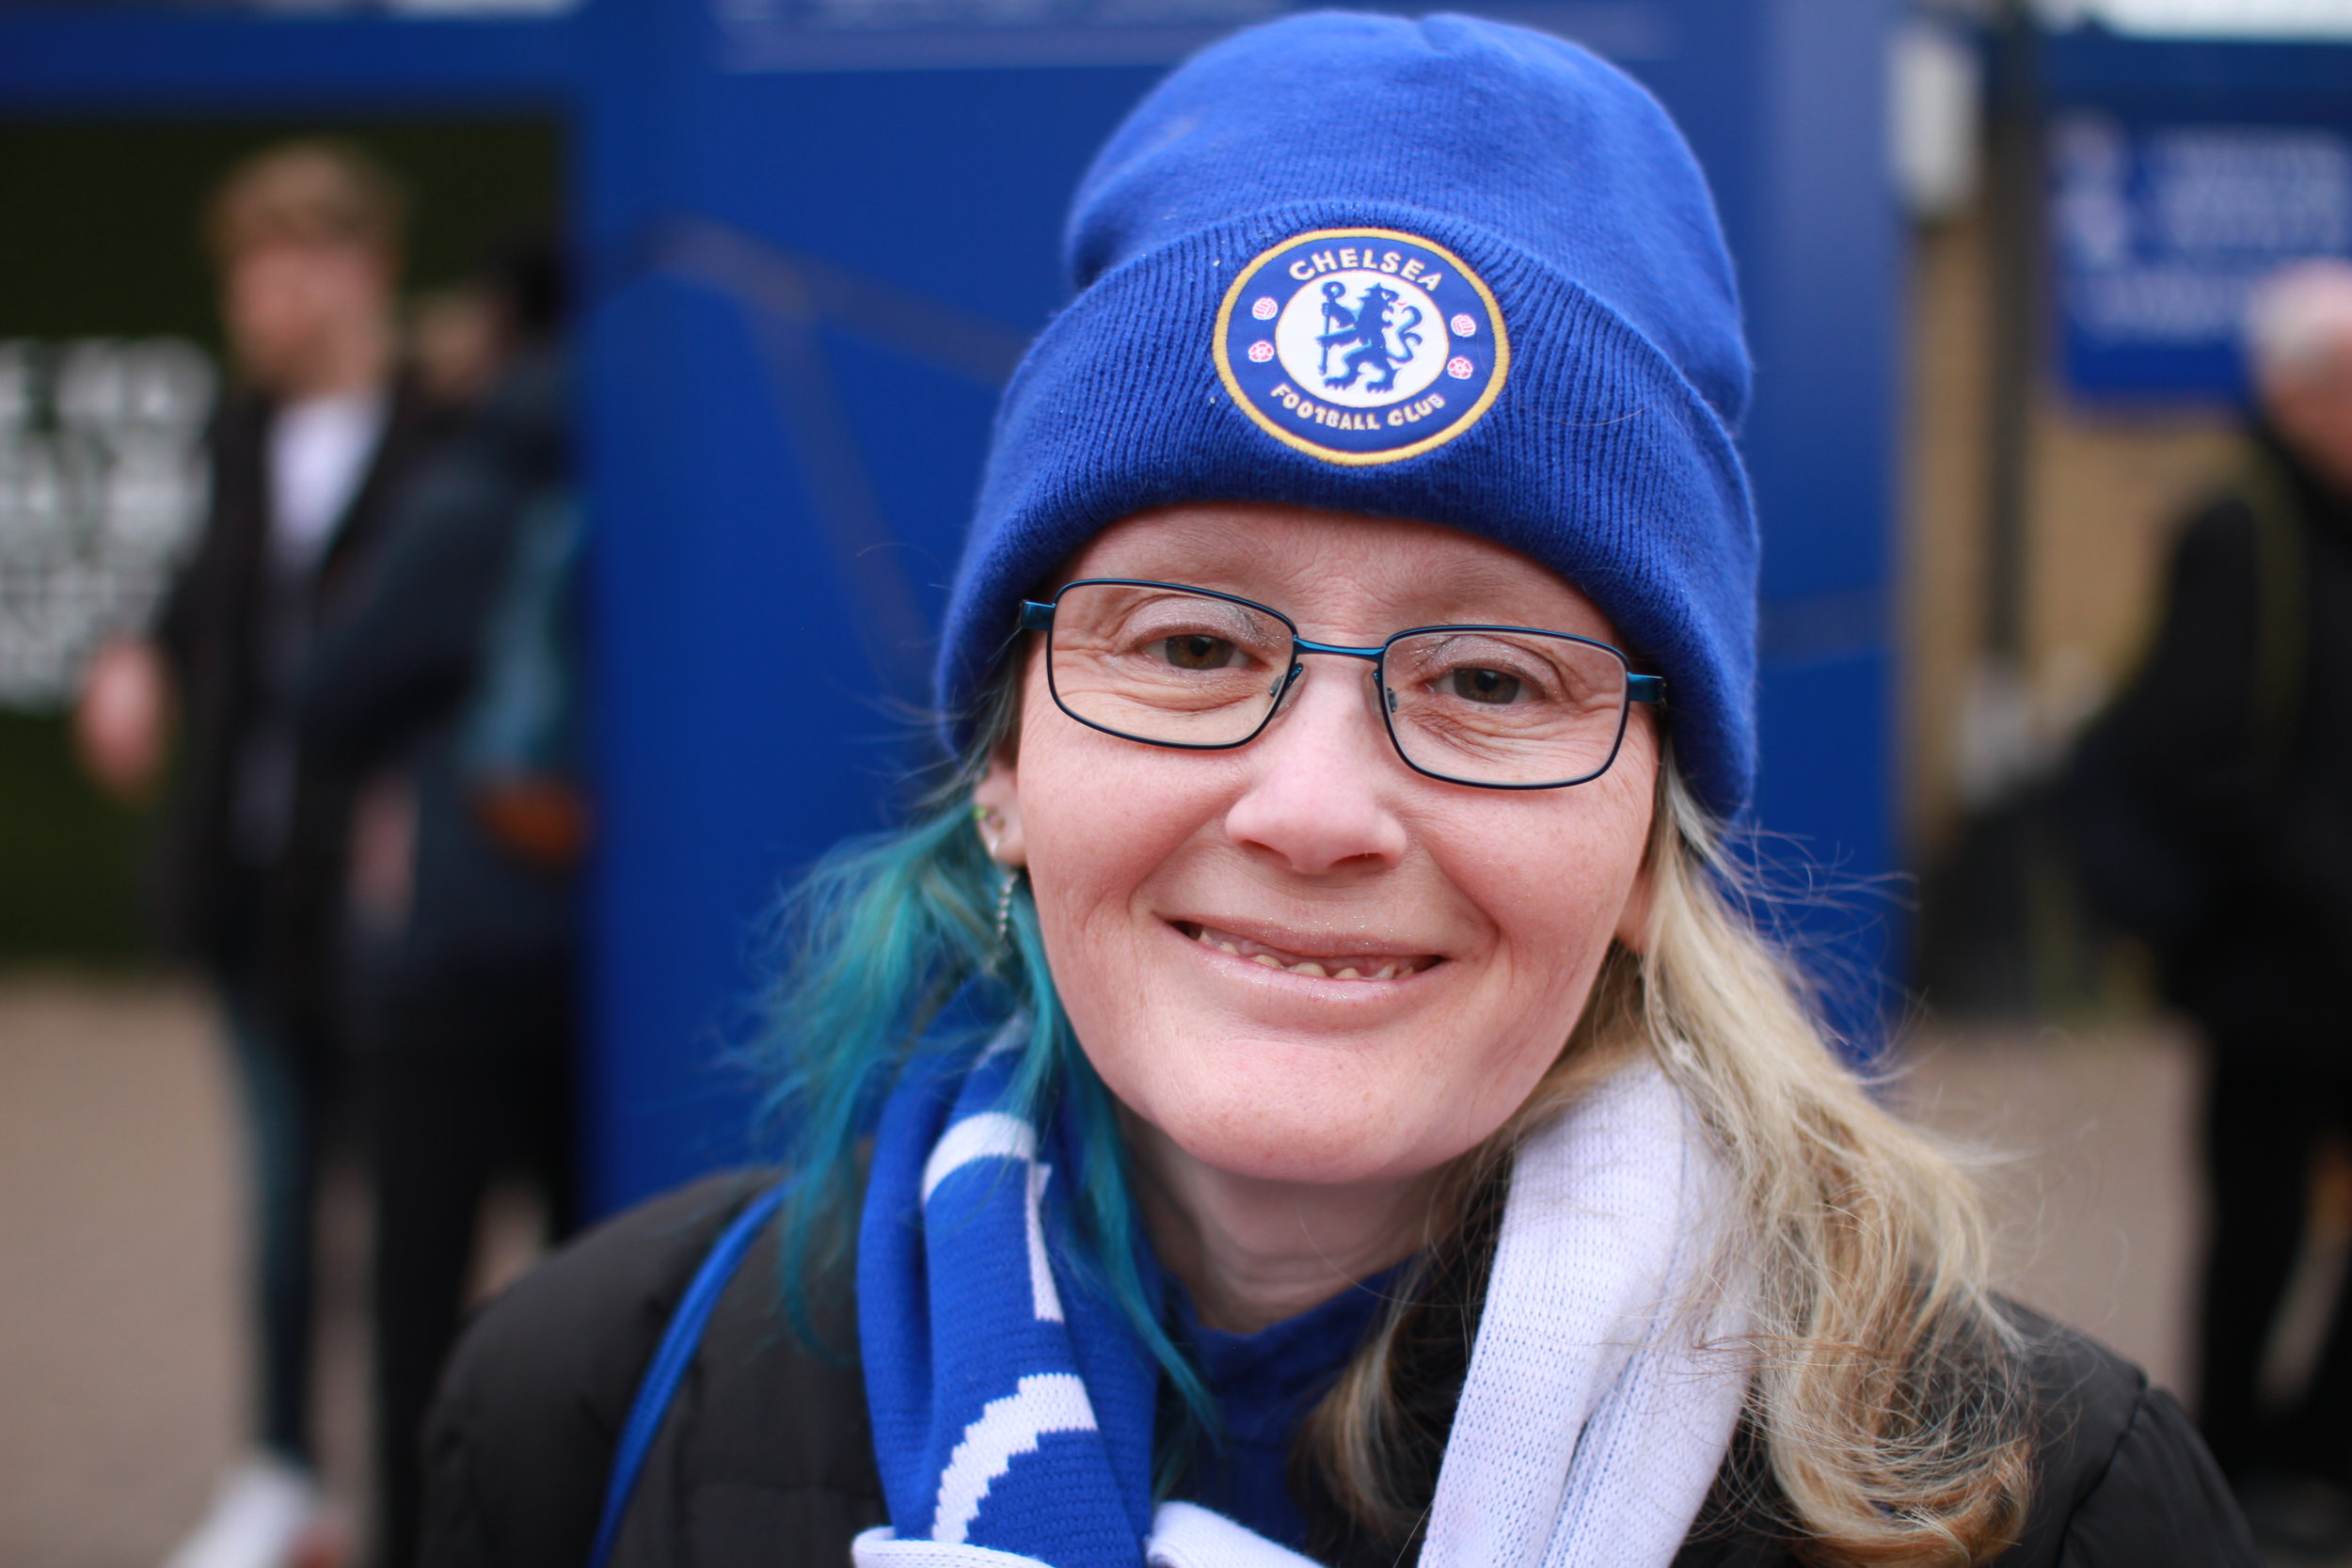 Female_Football_Fan_Chelsea.JPG